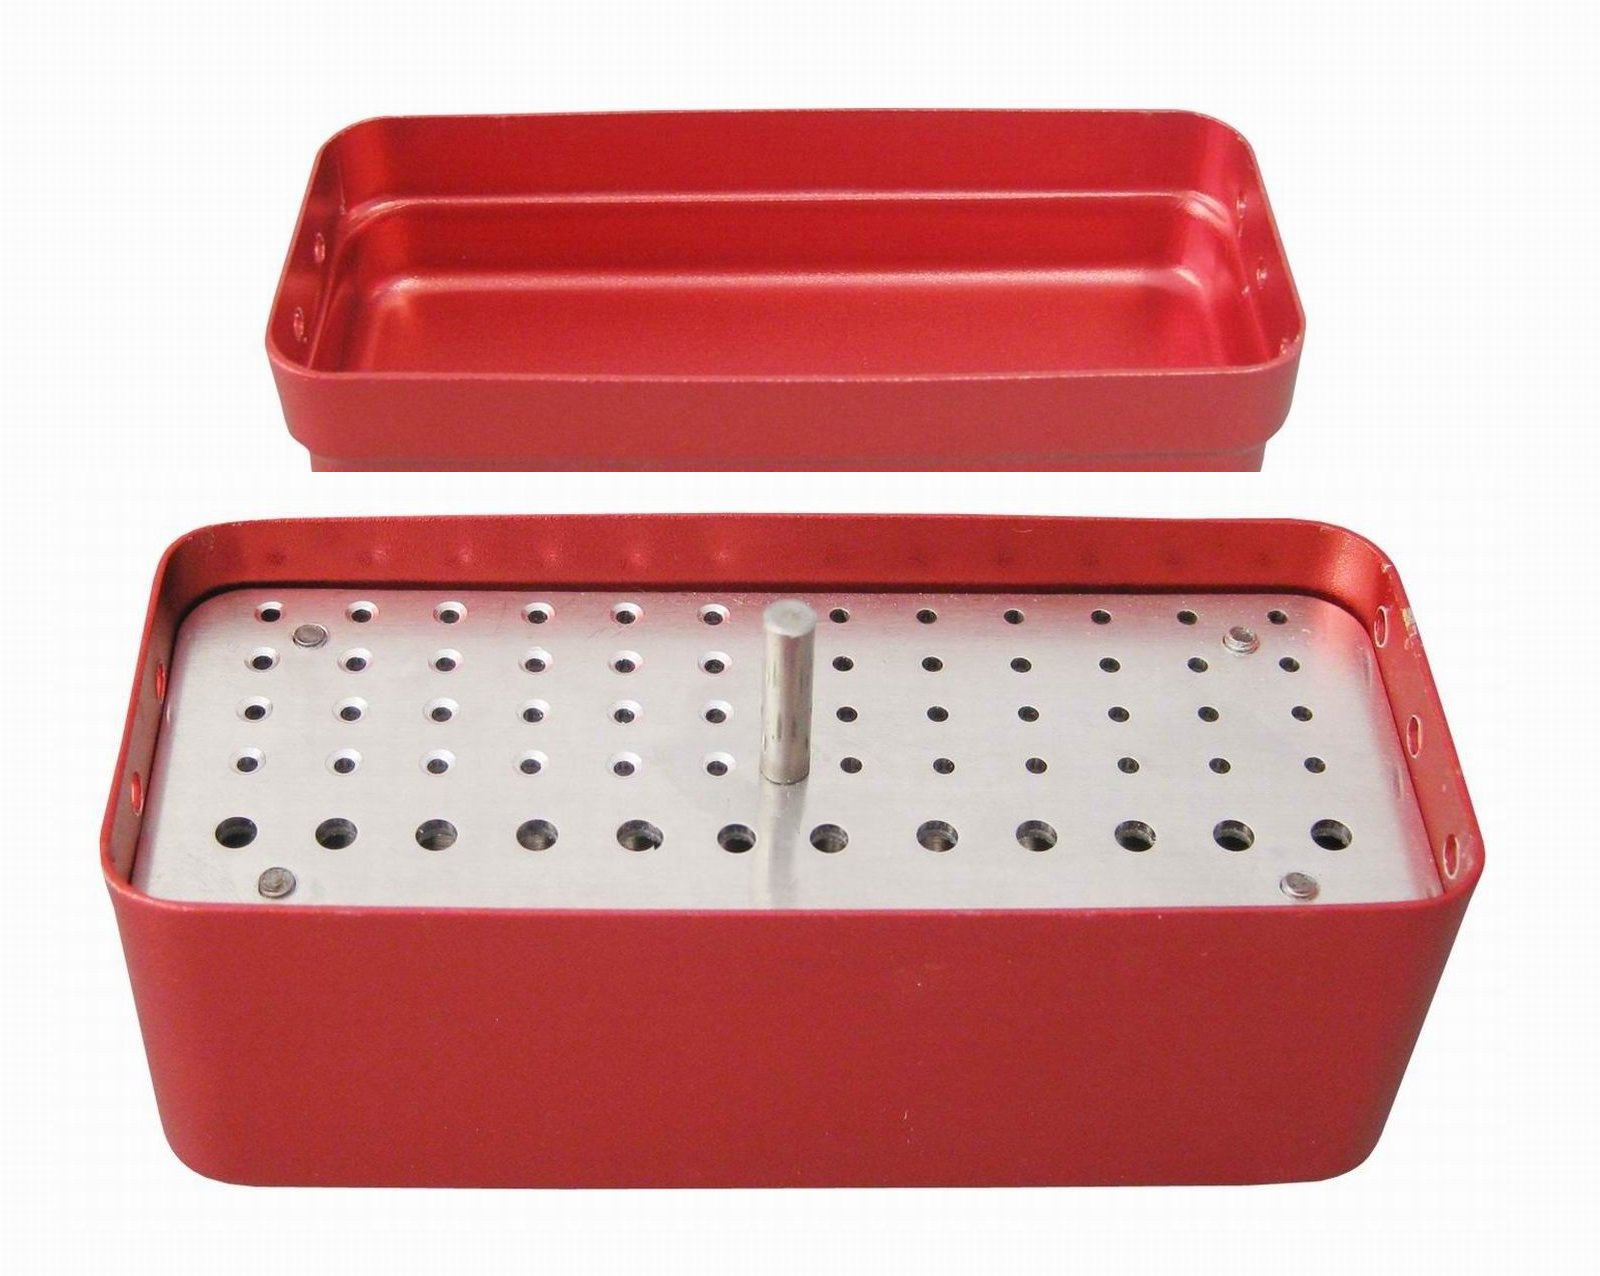 Aphrodite 72 Holes Bur Holder Sterilizer Case Disinfection Box 3 Used Red Dual core